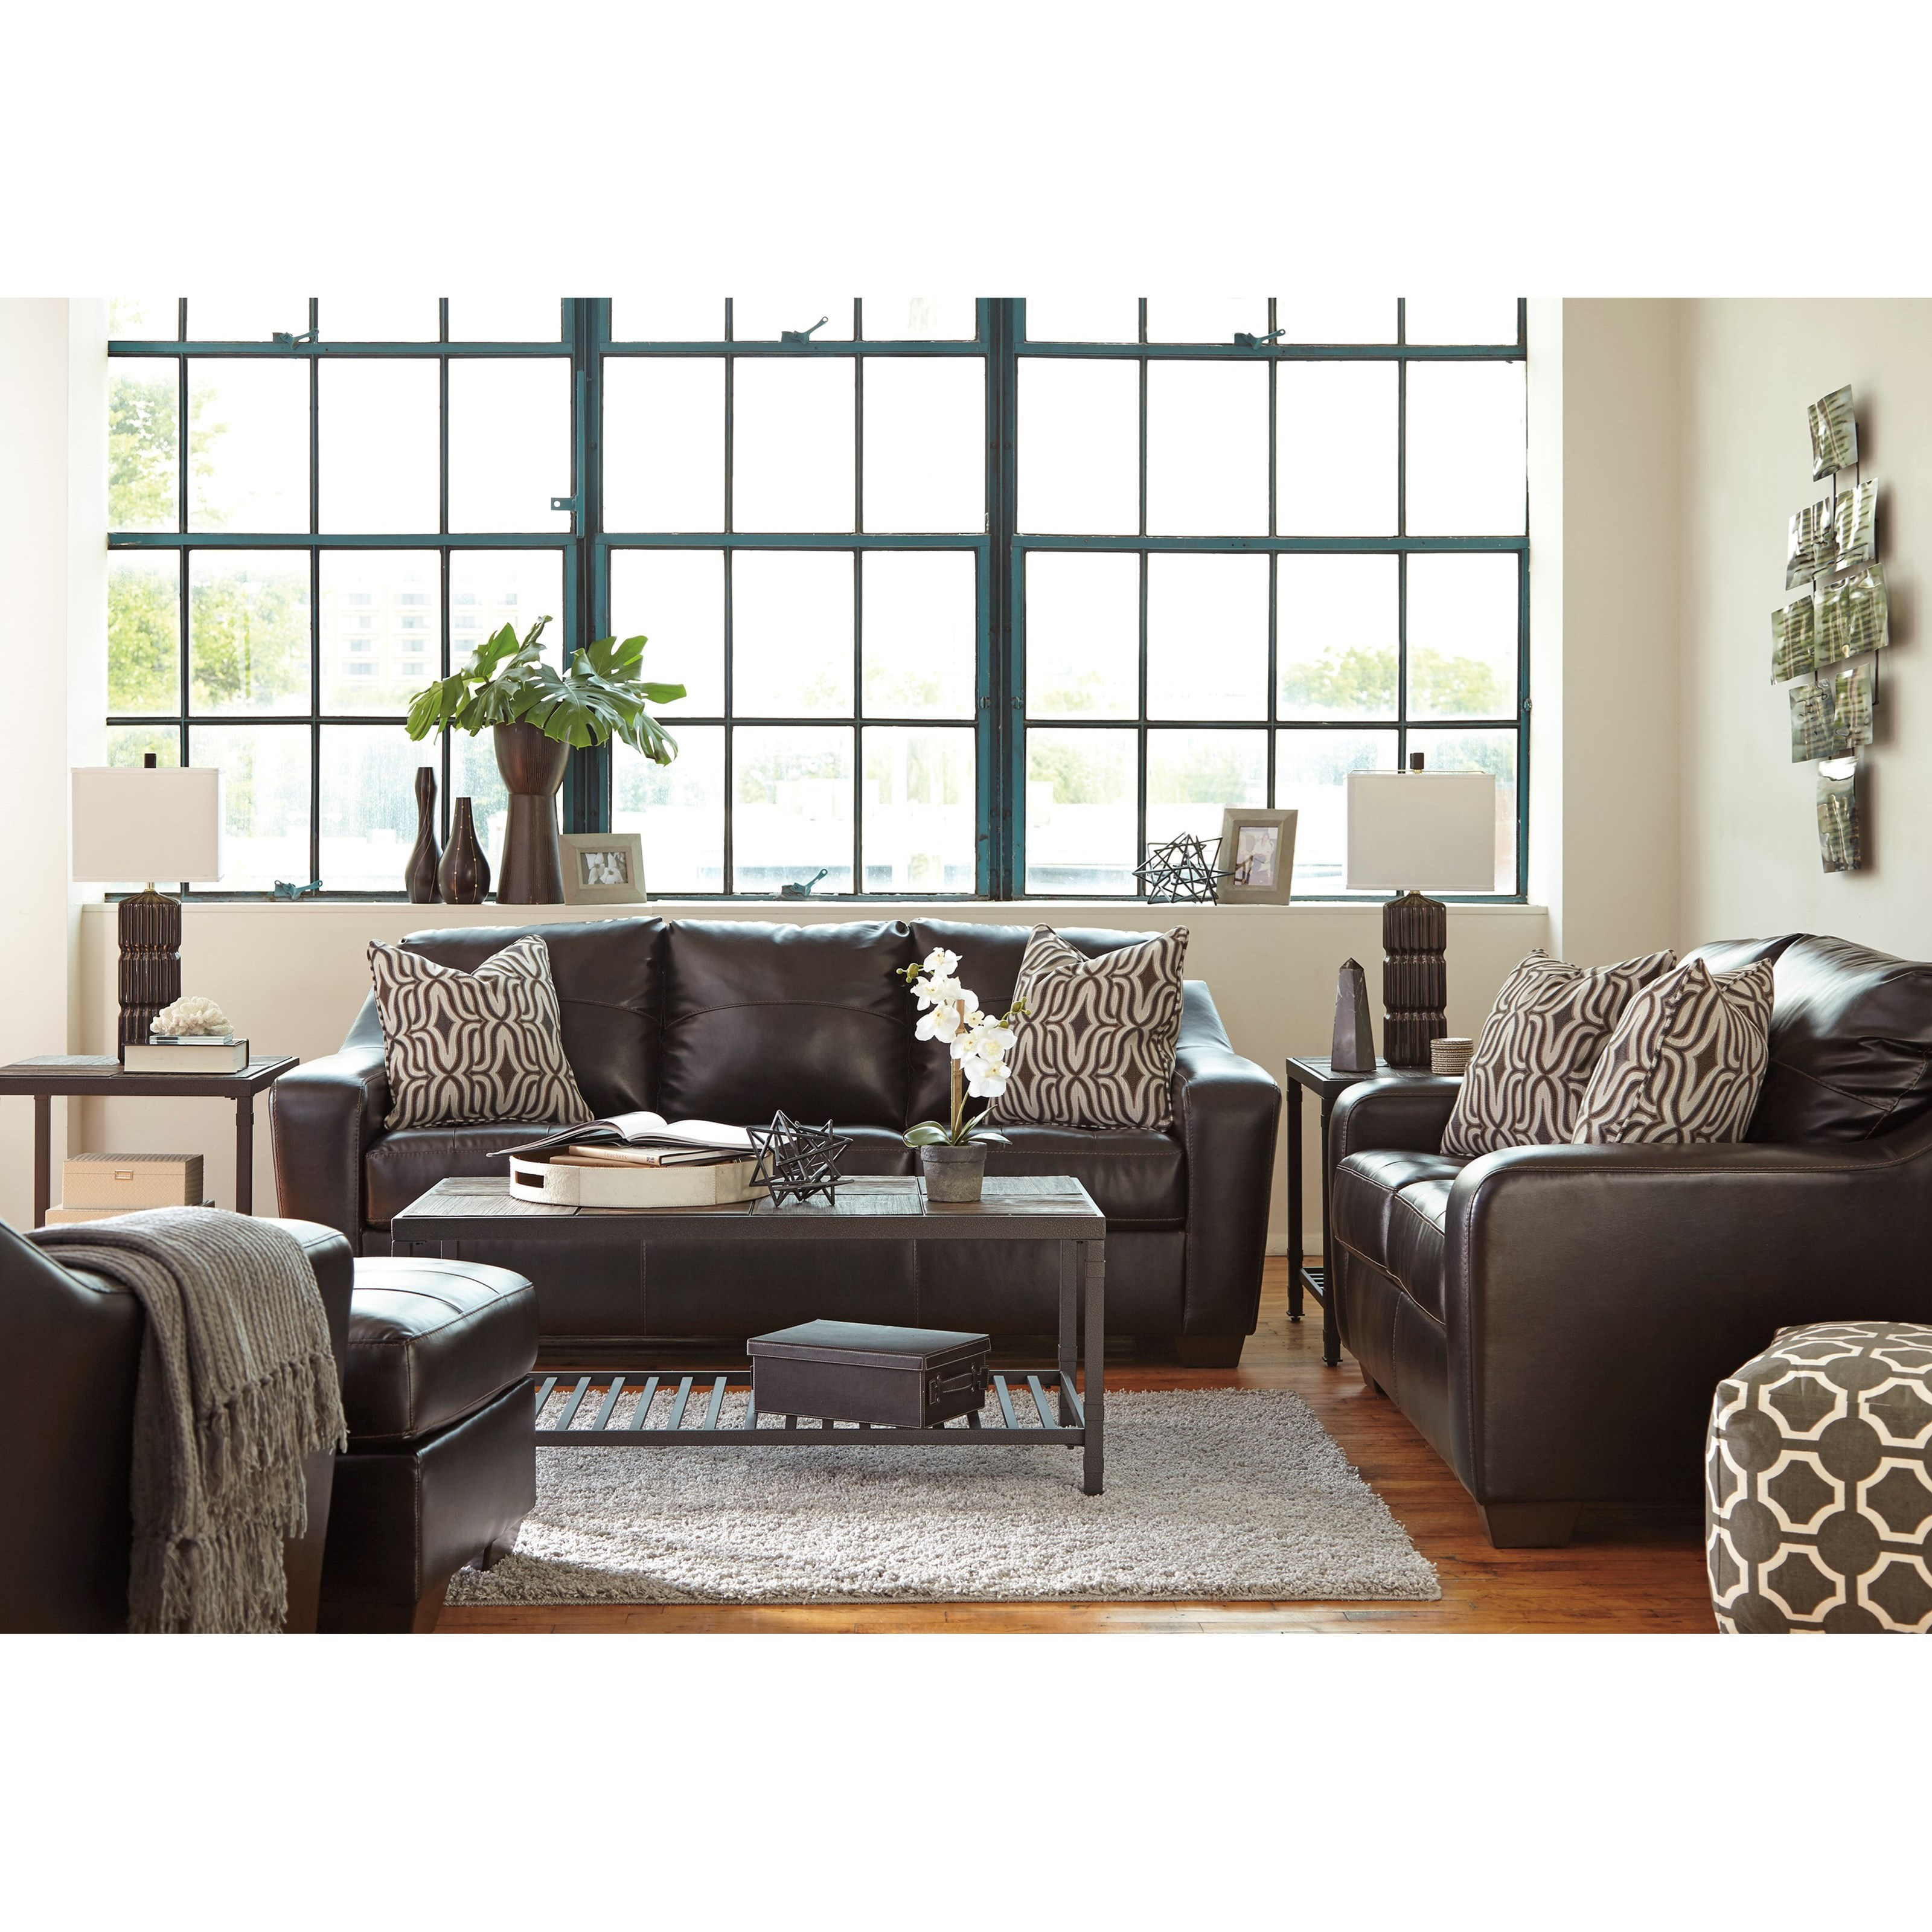 faux leather sofa with tufted seat cushions